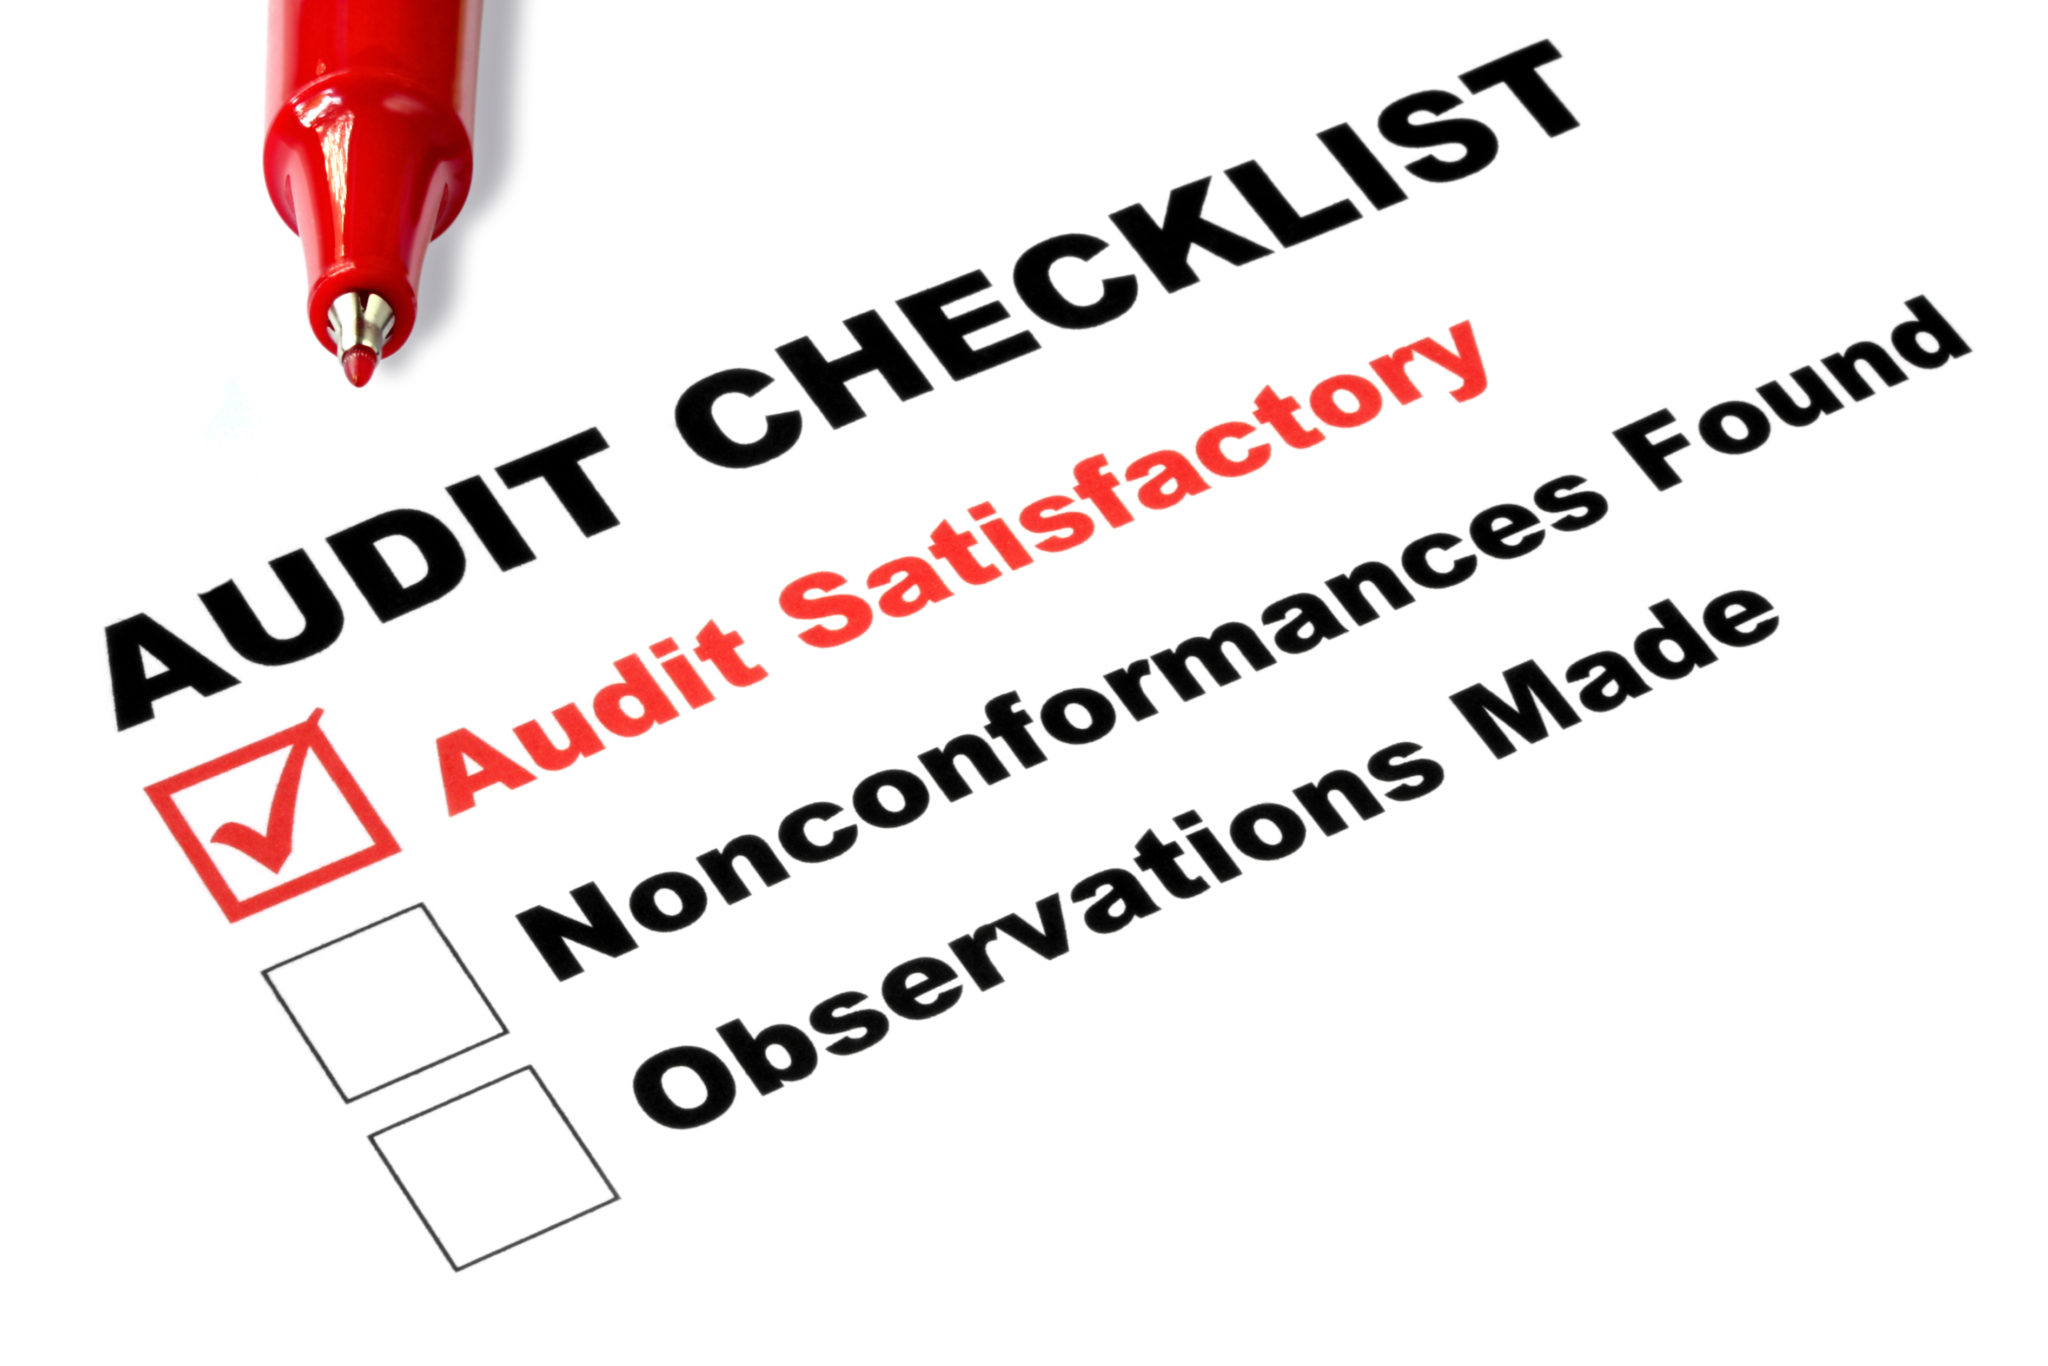 Prepare for Hosting Third Party Audits